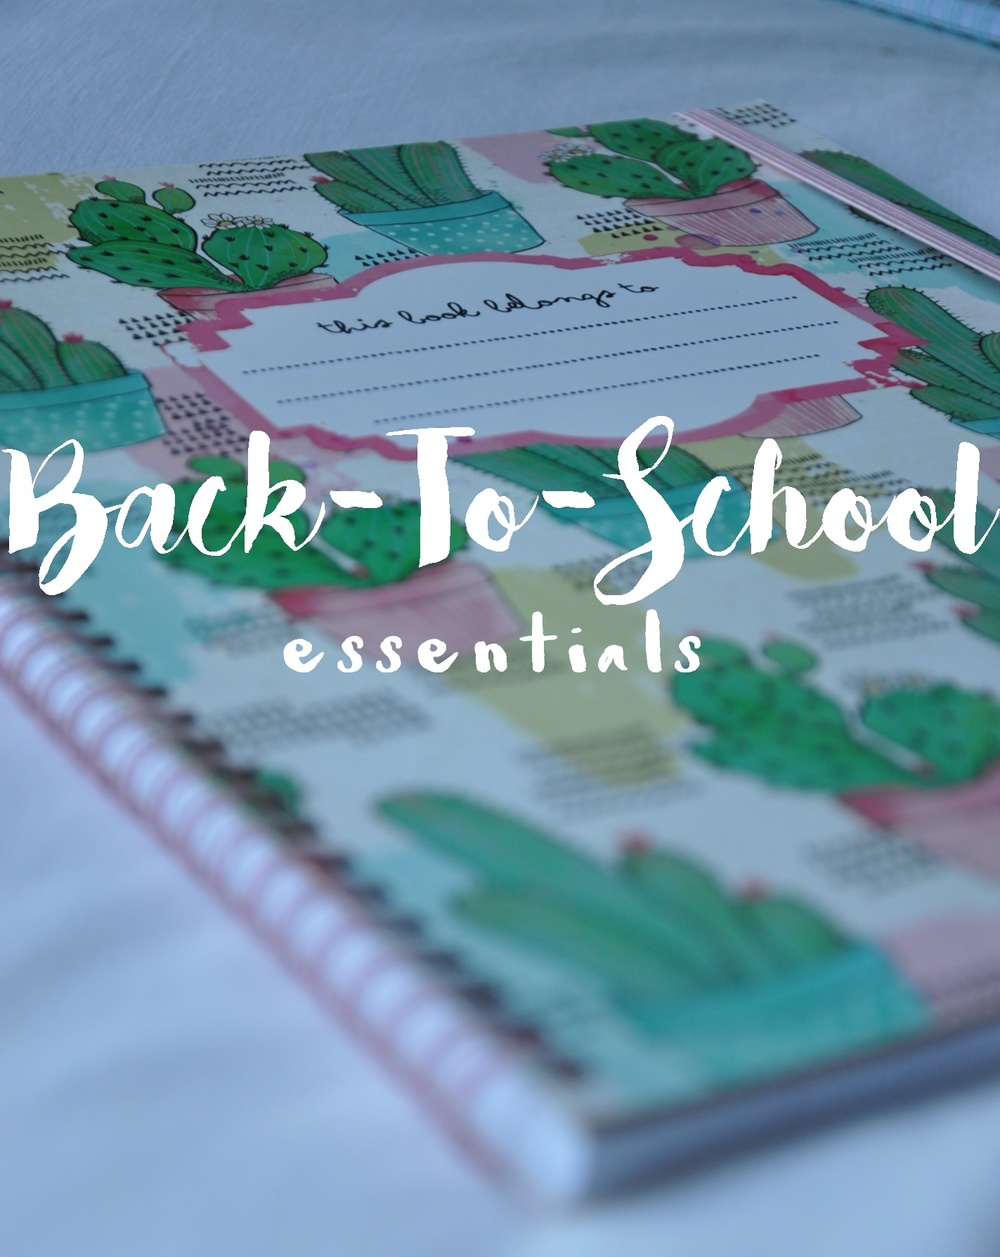 Back-To-School Essentials – All things you need for the new year and a fresh start at school. Includes school backpack, cute notebooks, stationery, waterbottle, cooler bag lunchbox, sticky notes, planner and pencil case. Darling ideas, succulents, woodland animals, birds and beautiful illustrations. A Lovely Space   alovelyspace.com